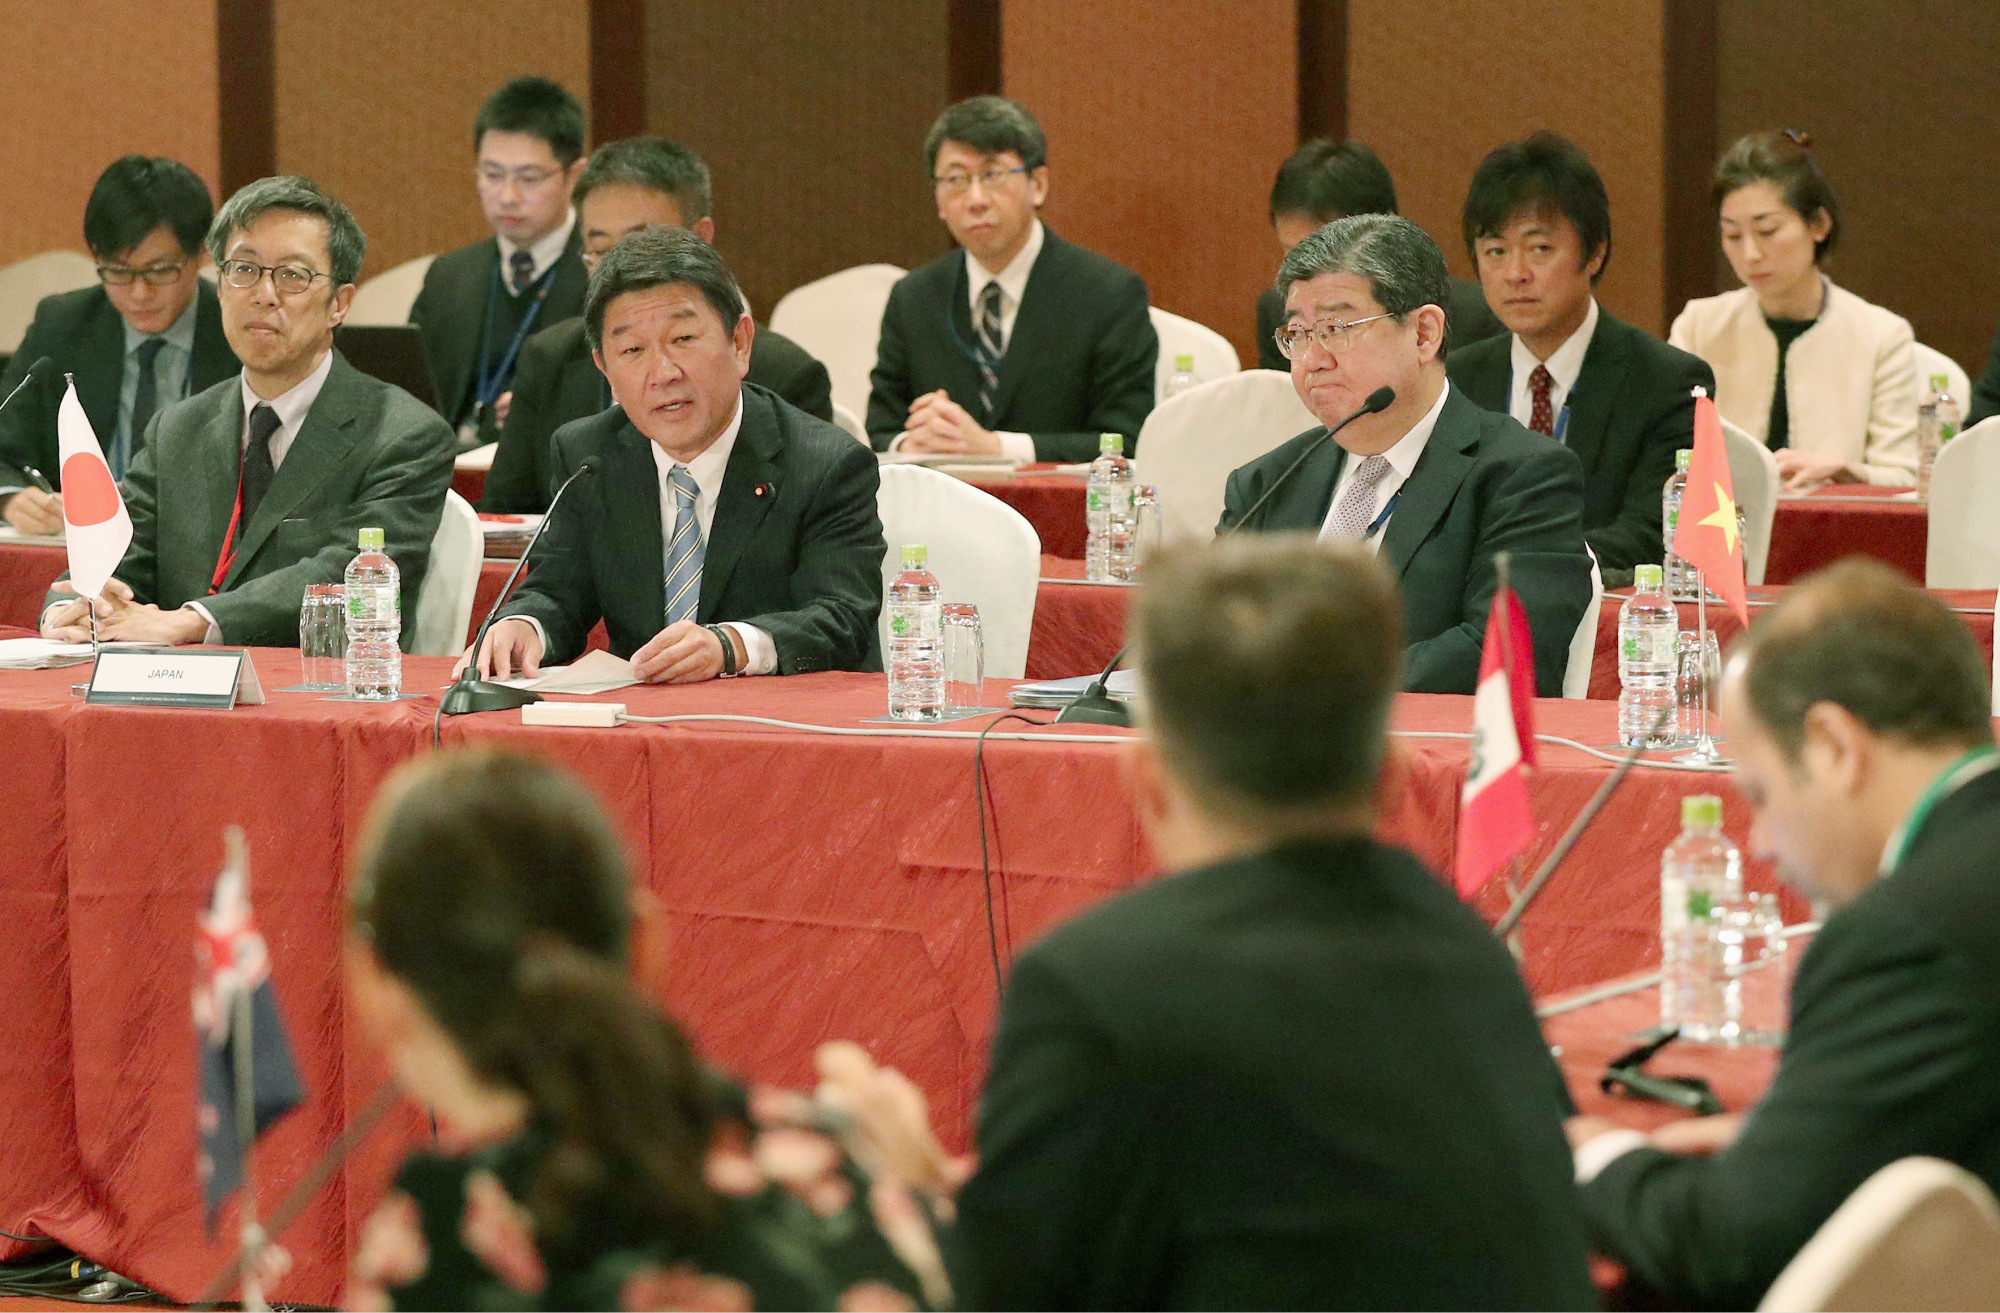 Toshimitsu Motegi, Japan's minister in charge of the Trans-Pacific Partnership, speaks at a two-day meeting of chief negotiators from the other participating nations. | KYODO